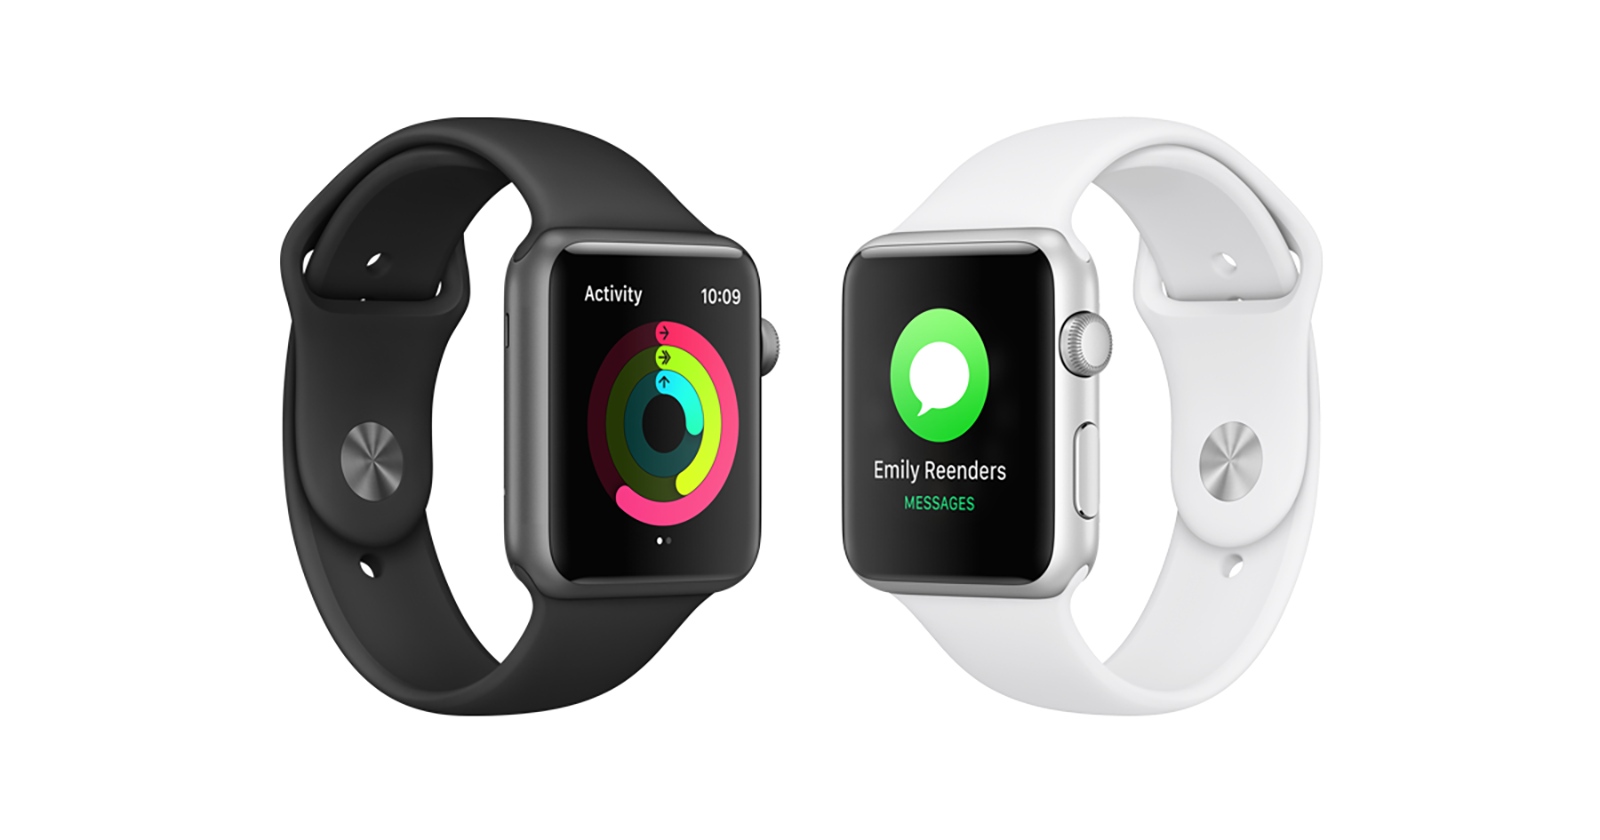 target offers discounted apple watch series 1 models the. Black Bedroom Furniture Sets. Home Design Ideas